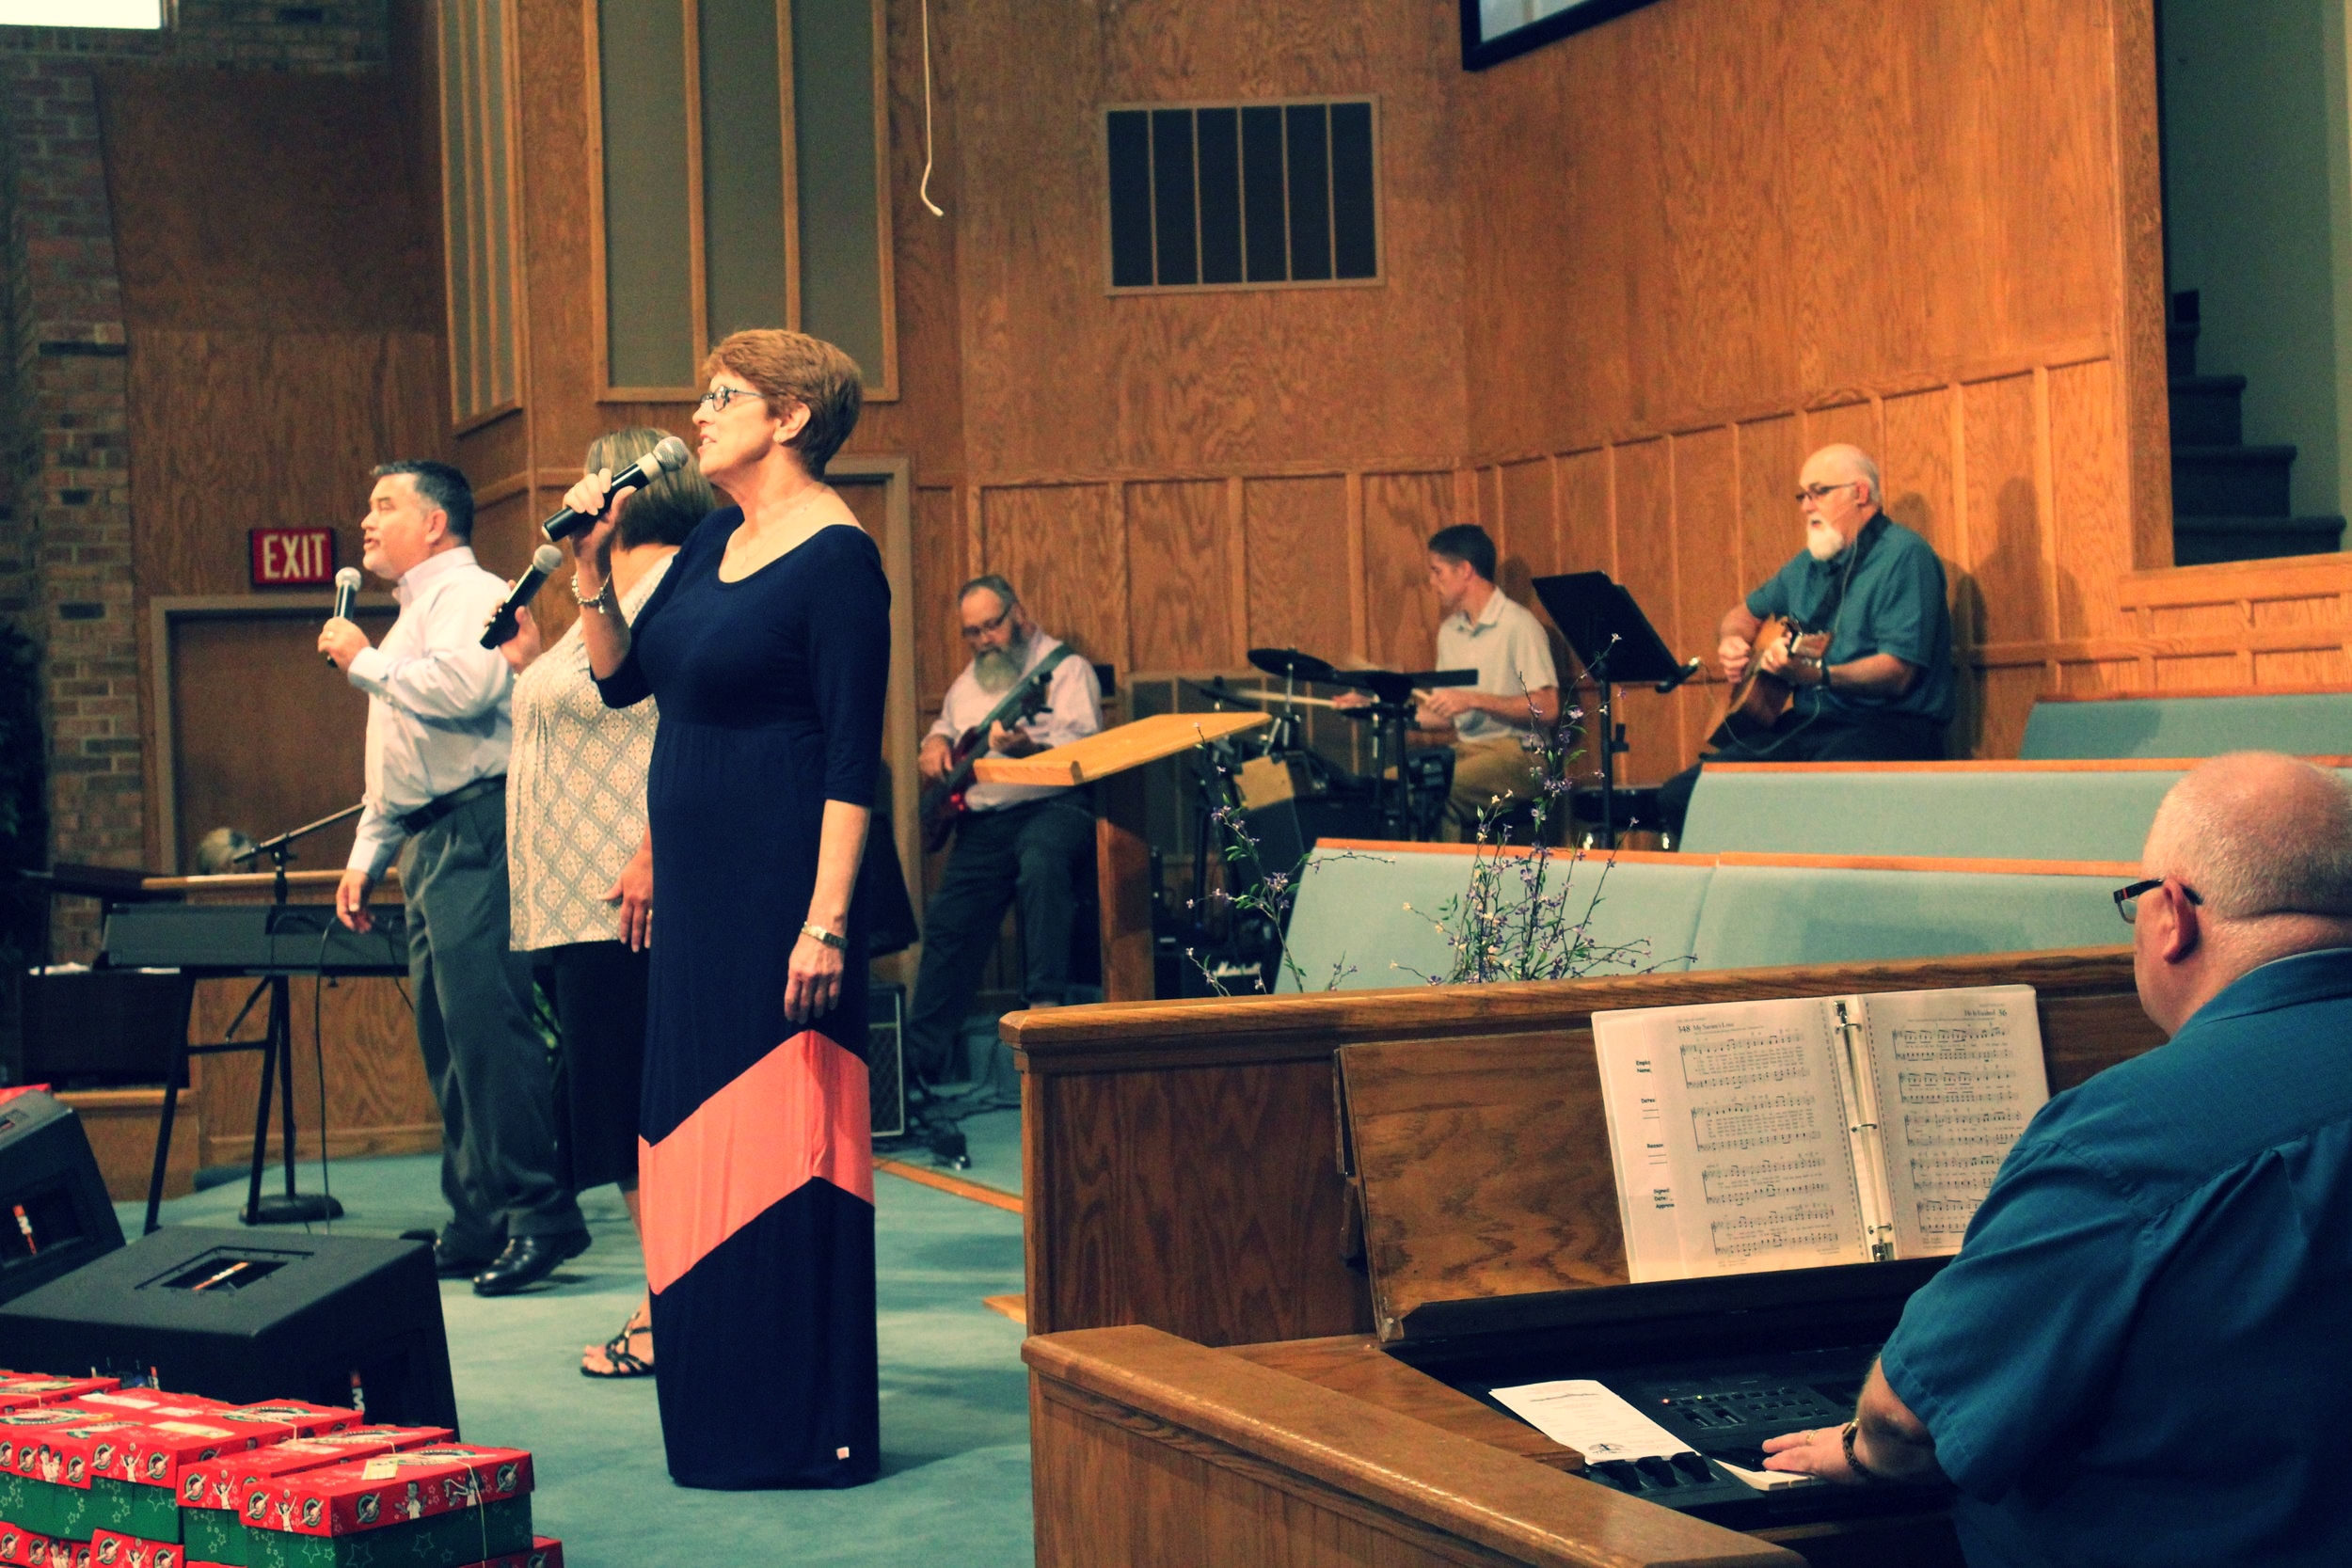 Join us for worship this week -